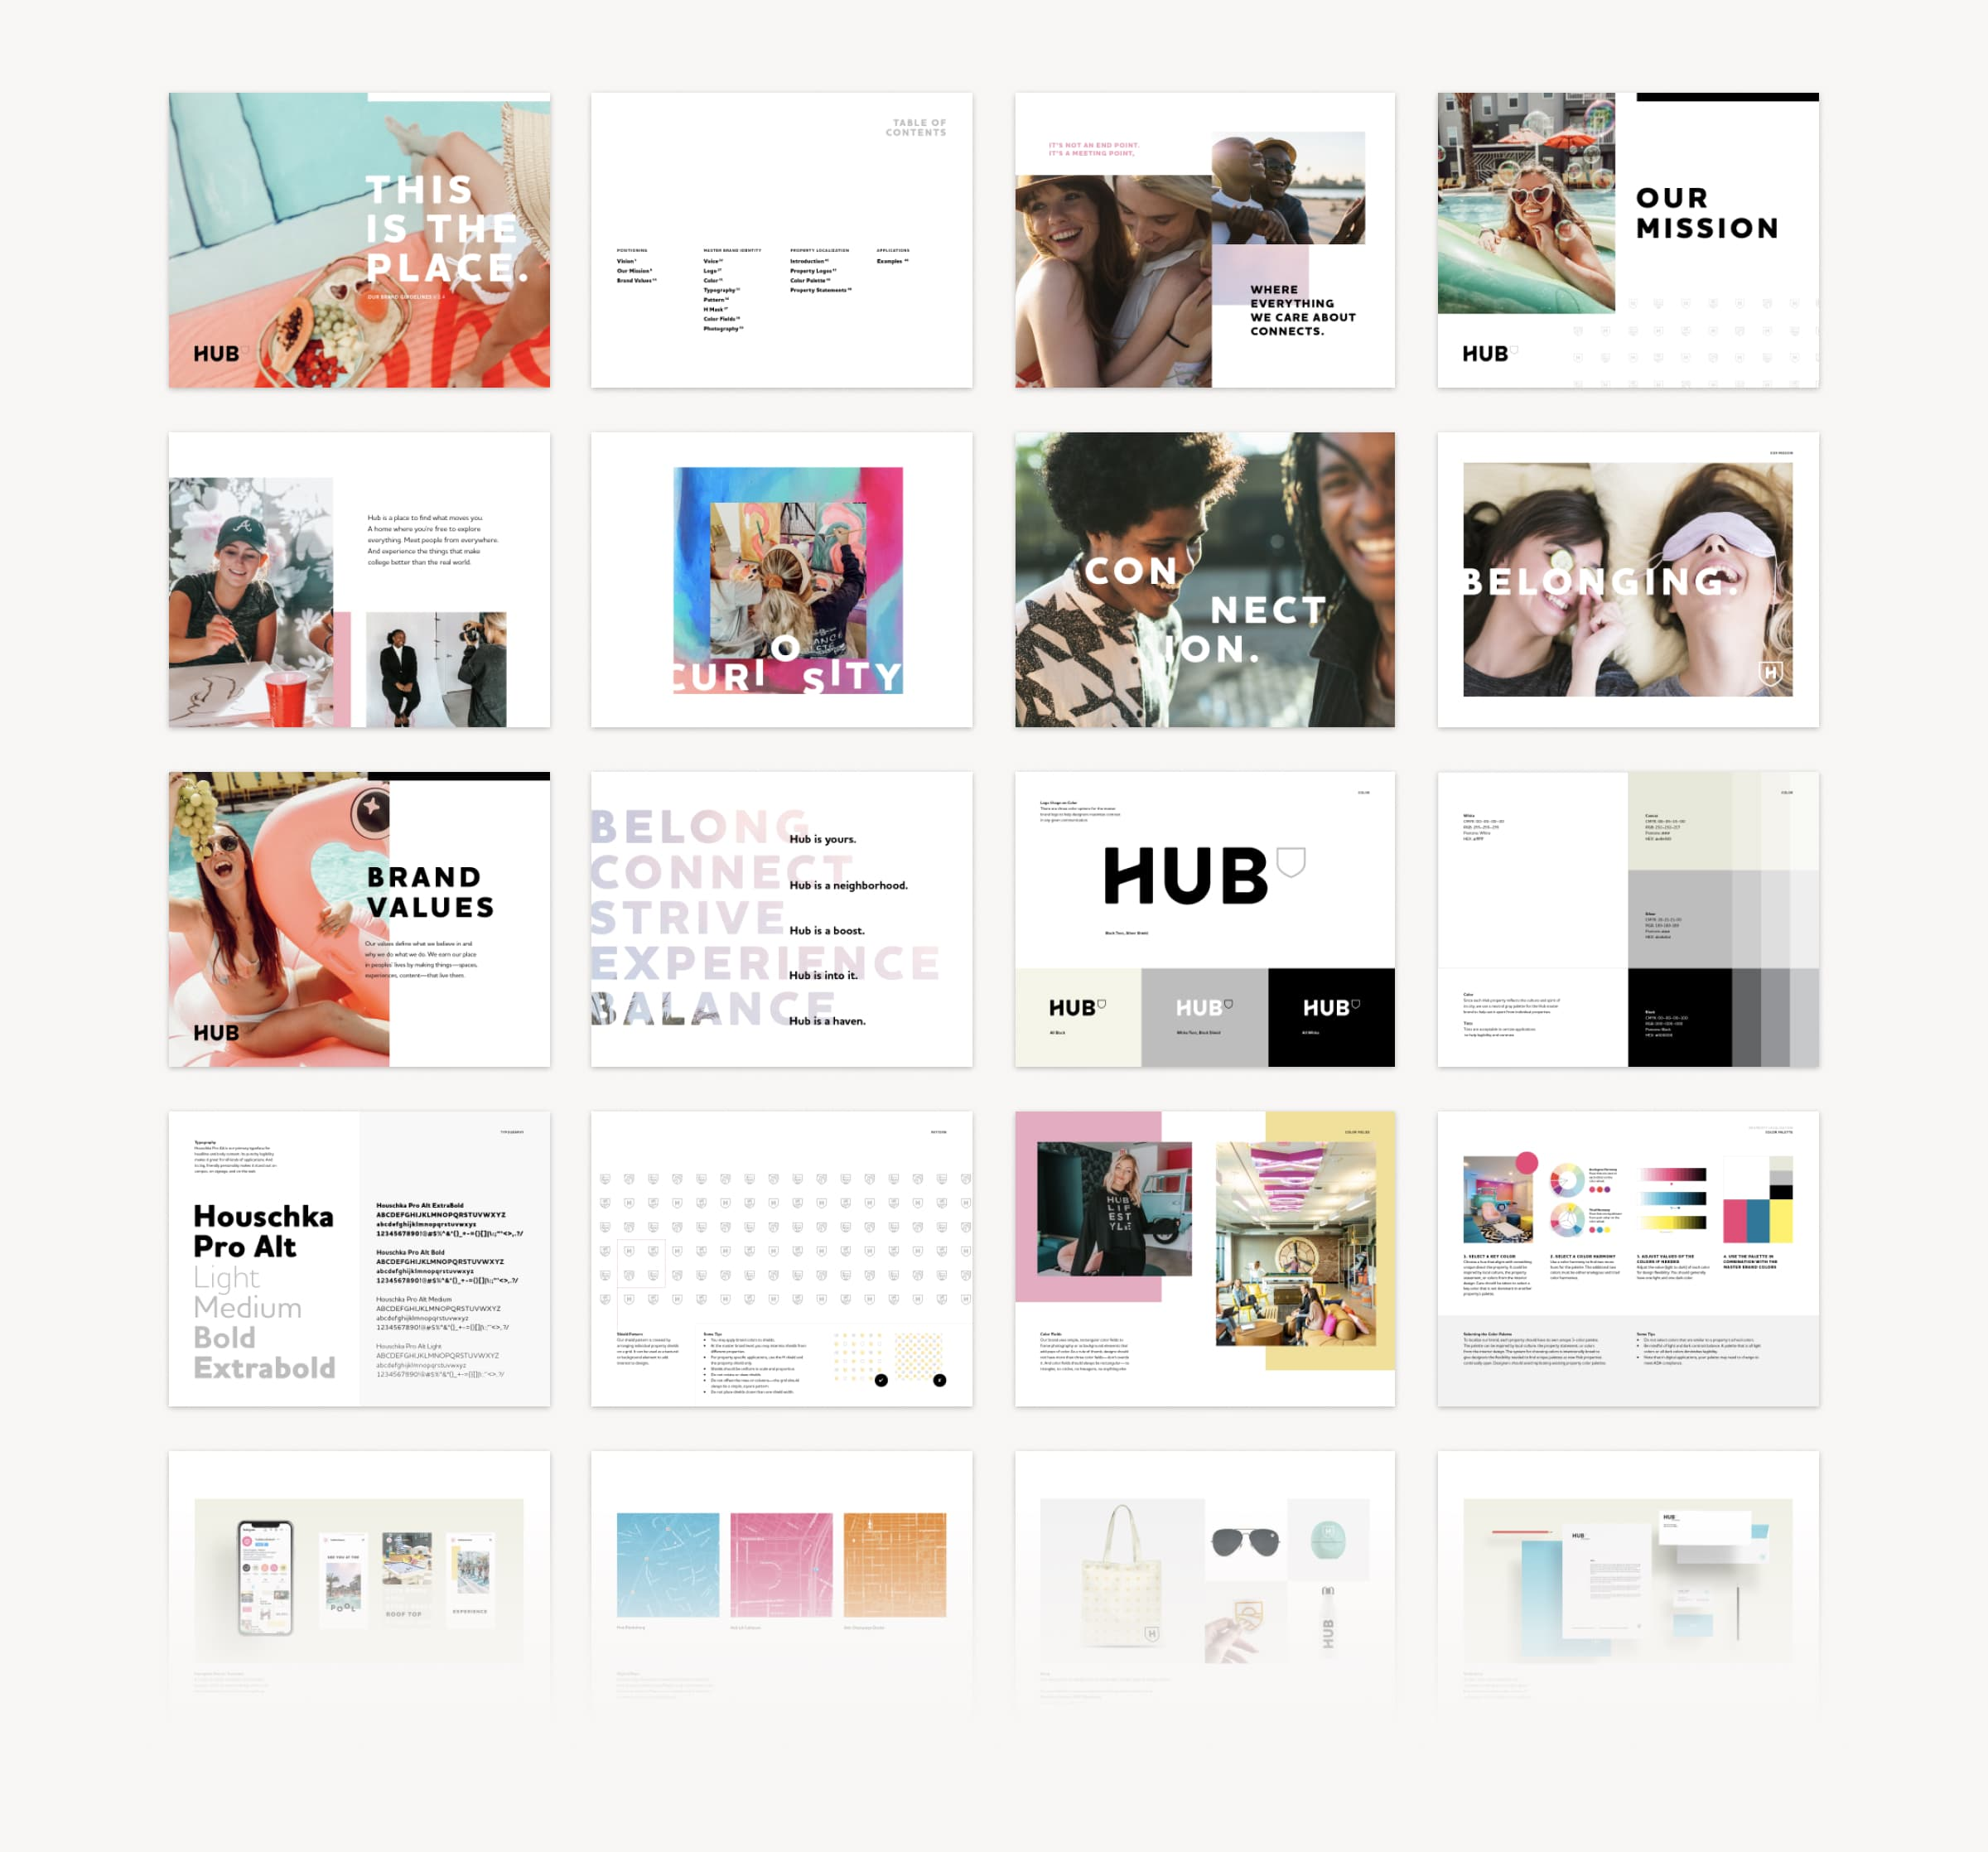 A series of 20 thumbnail images showing key pages from the Hub brand style guide.